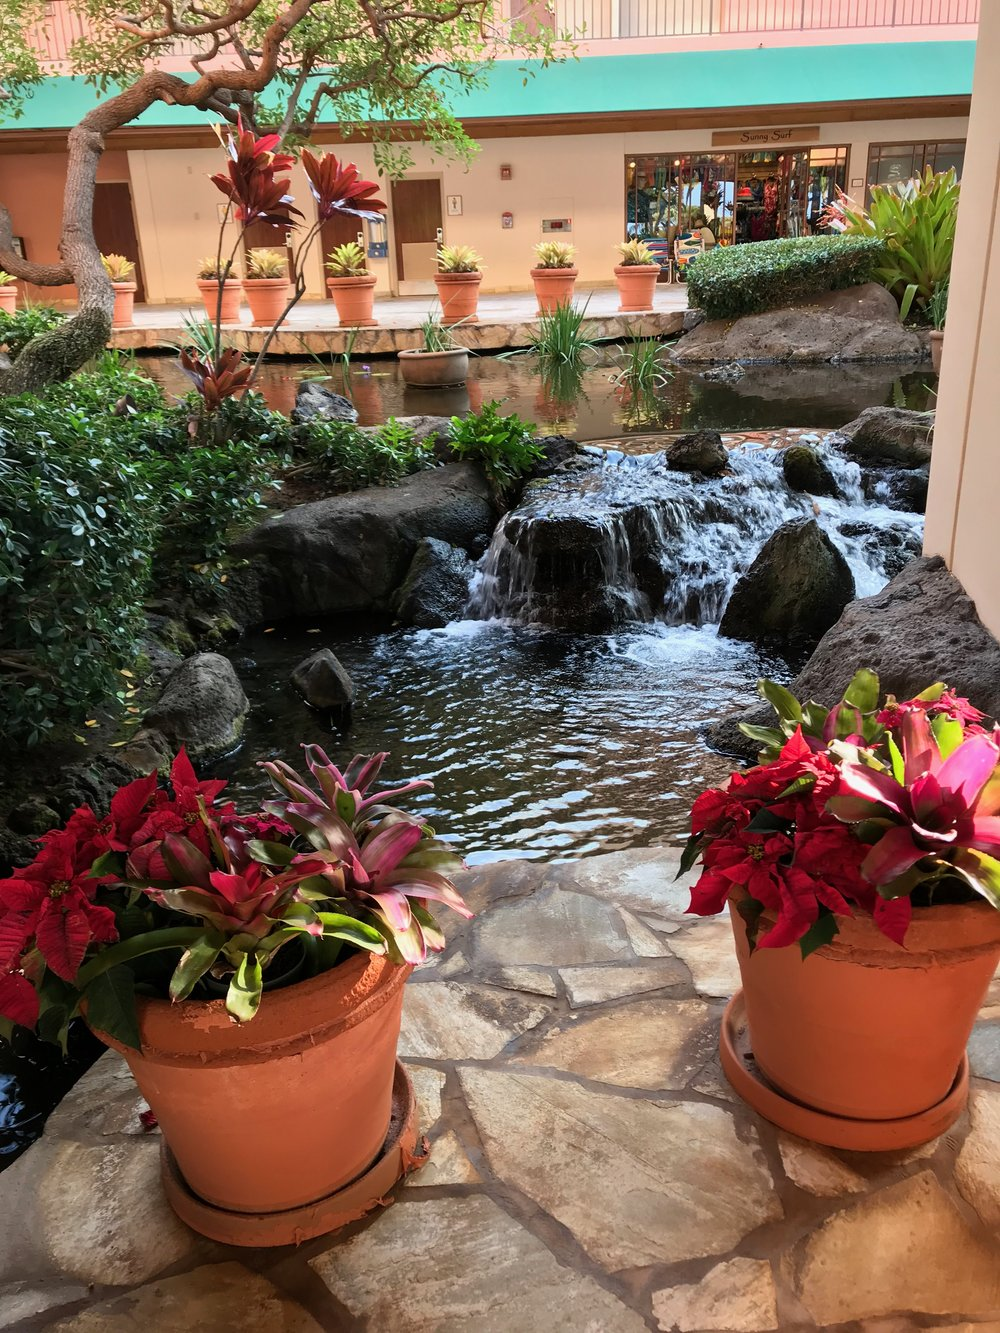 Red flower pots and H20 fall.jpg*.jpg